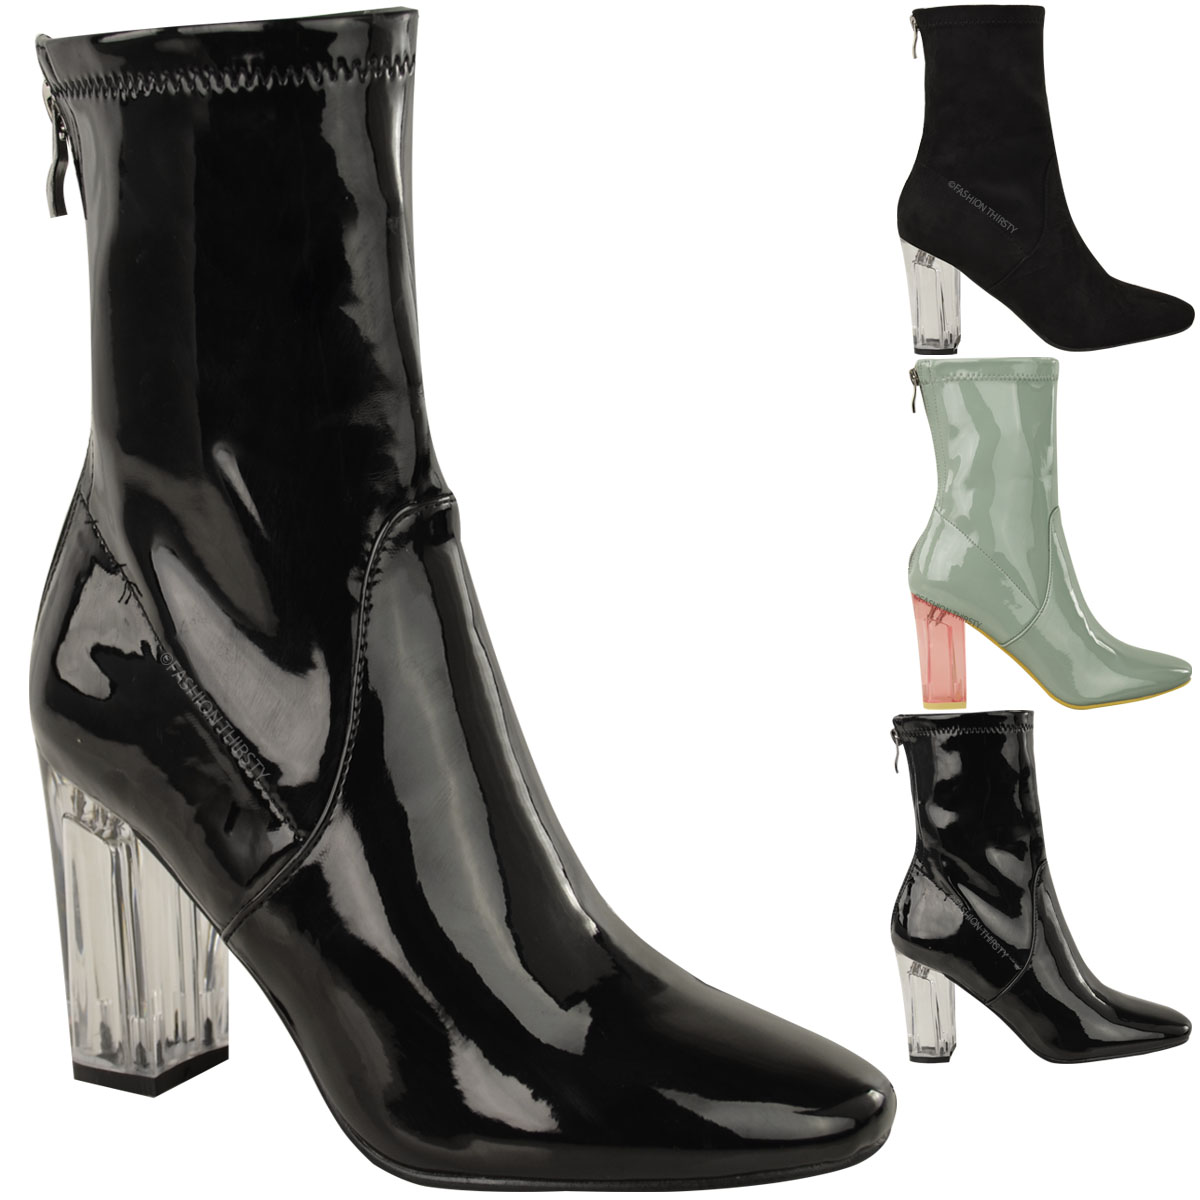 New Ladies Womens Ankle Boots Clear Perspex Block High